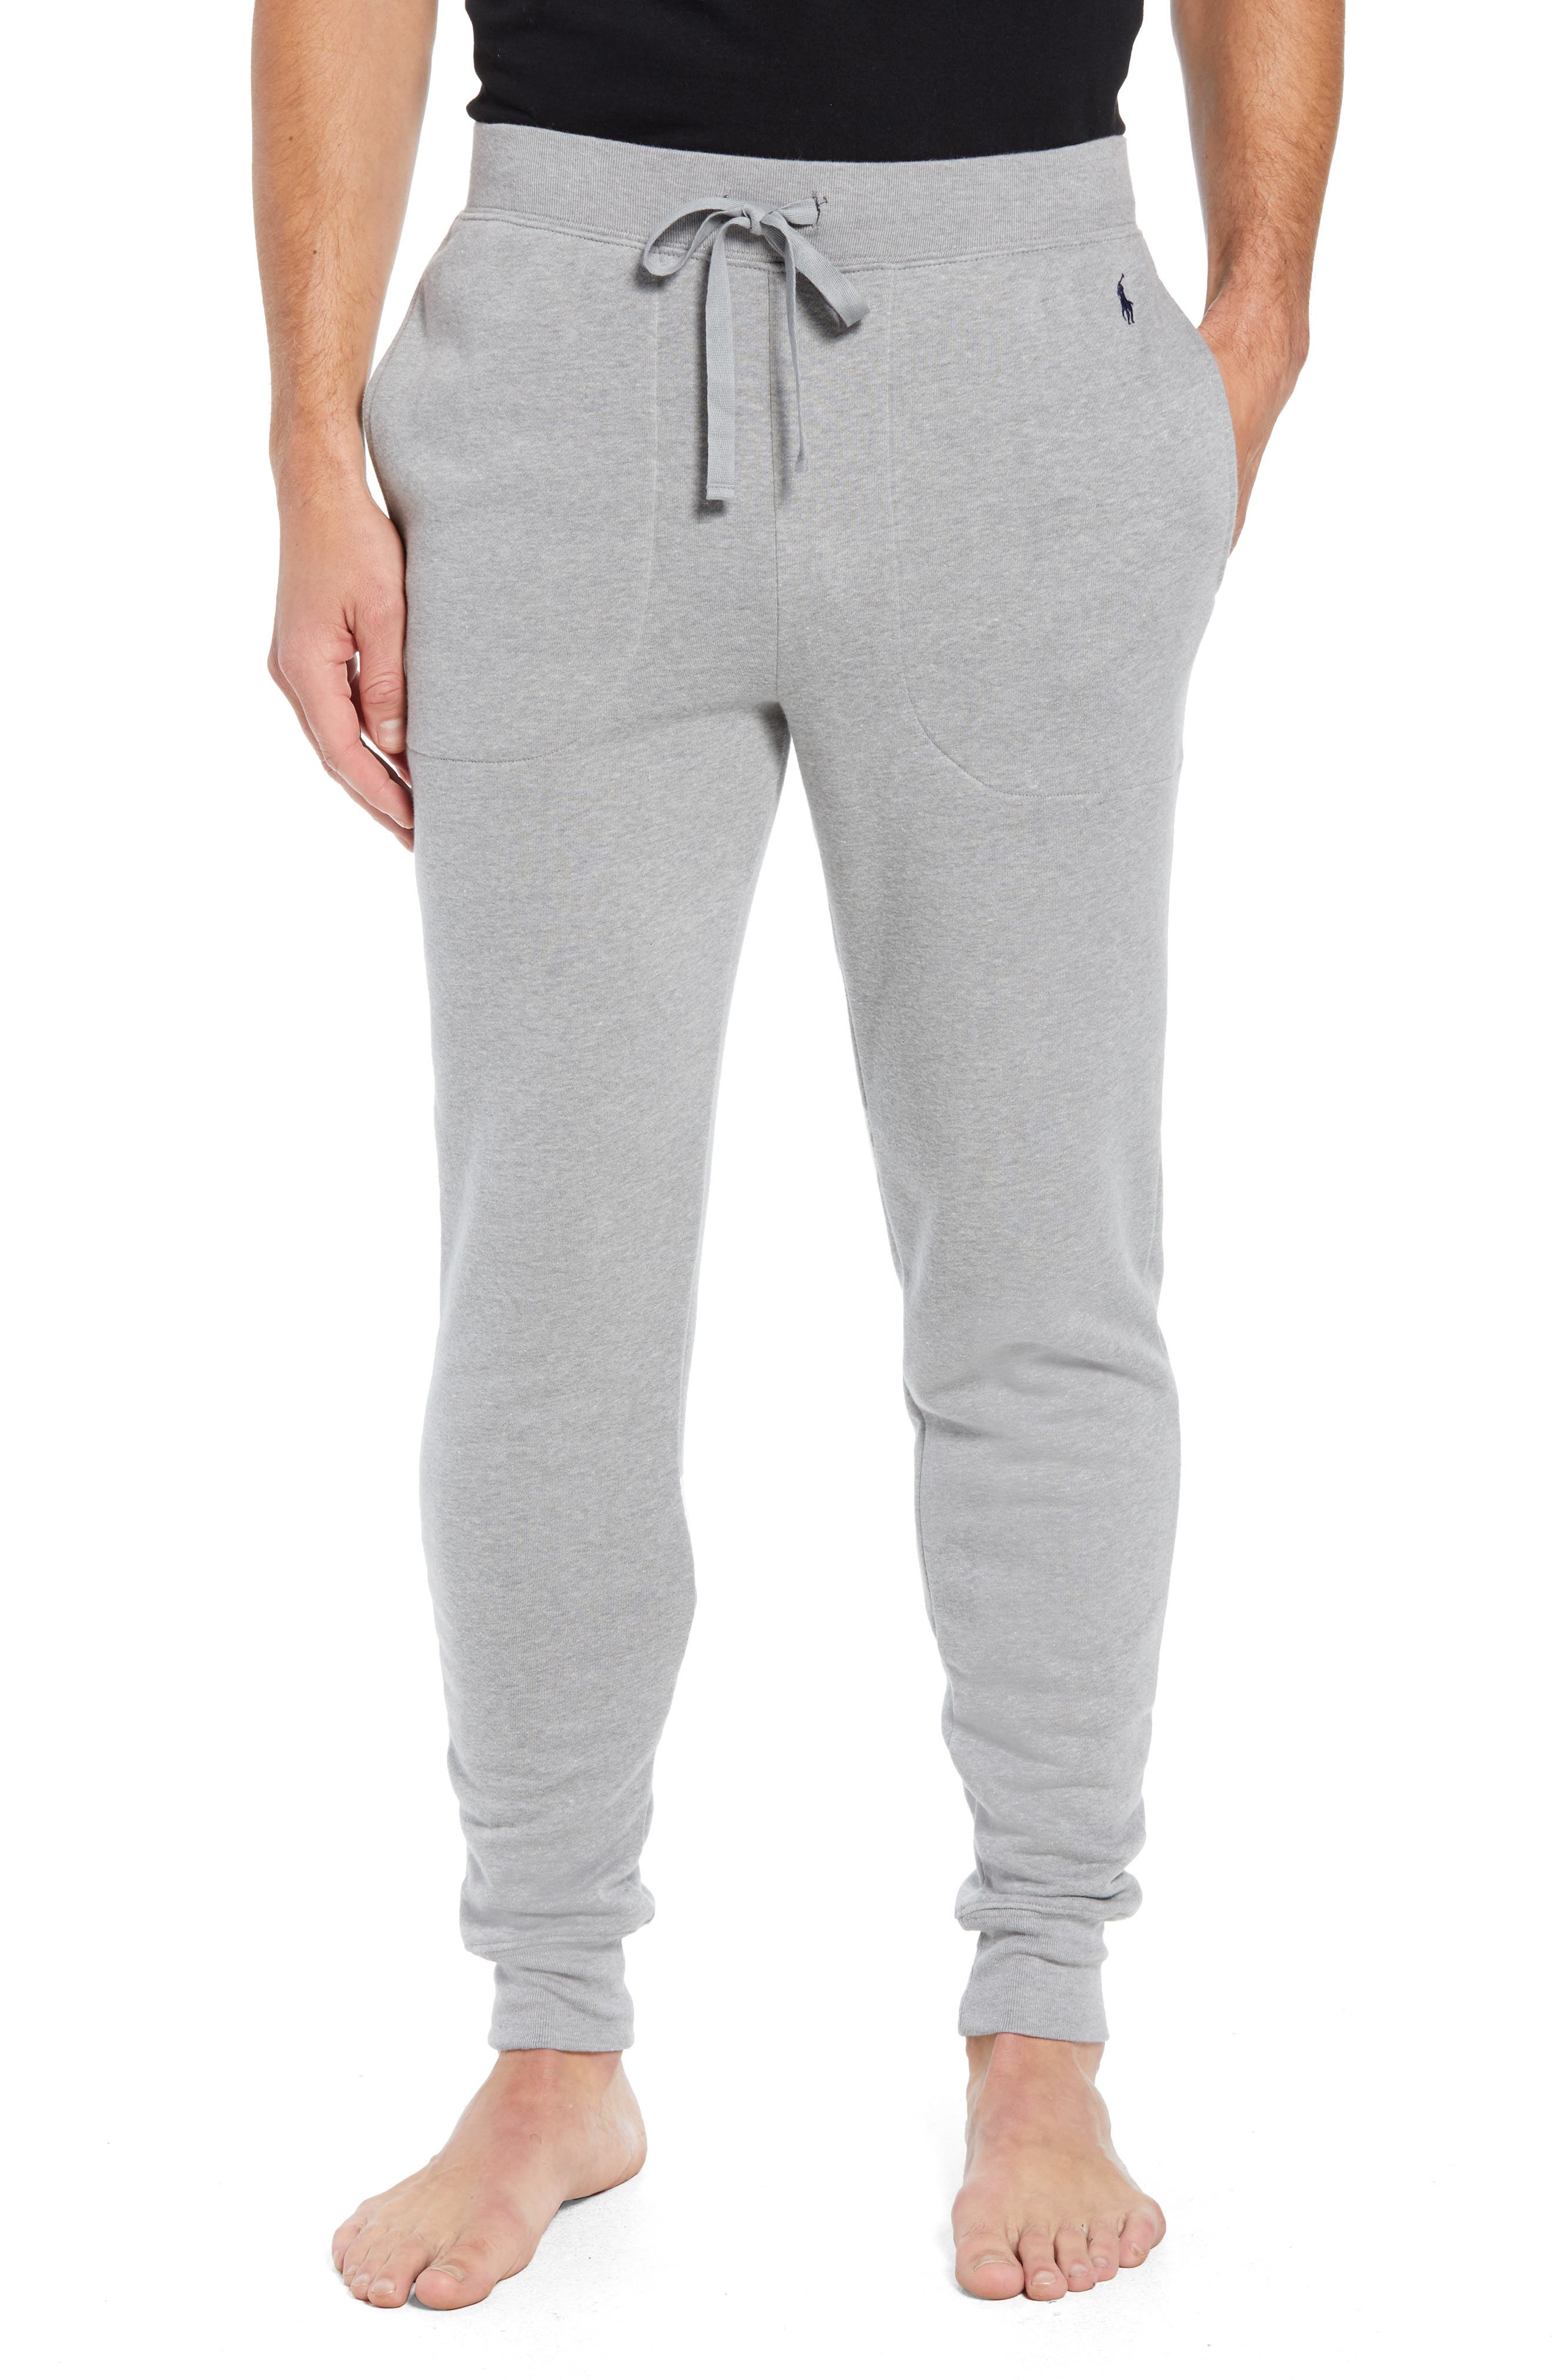 Brushed Jersey Cotton Blend Jogger Pants,                             Main thumbnail 1, color,                             ANDOVER HEATHER GREY